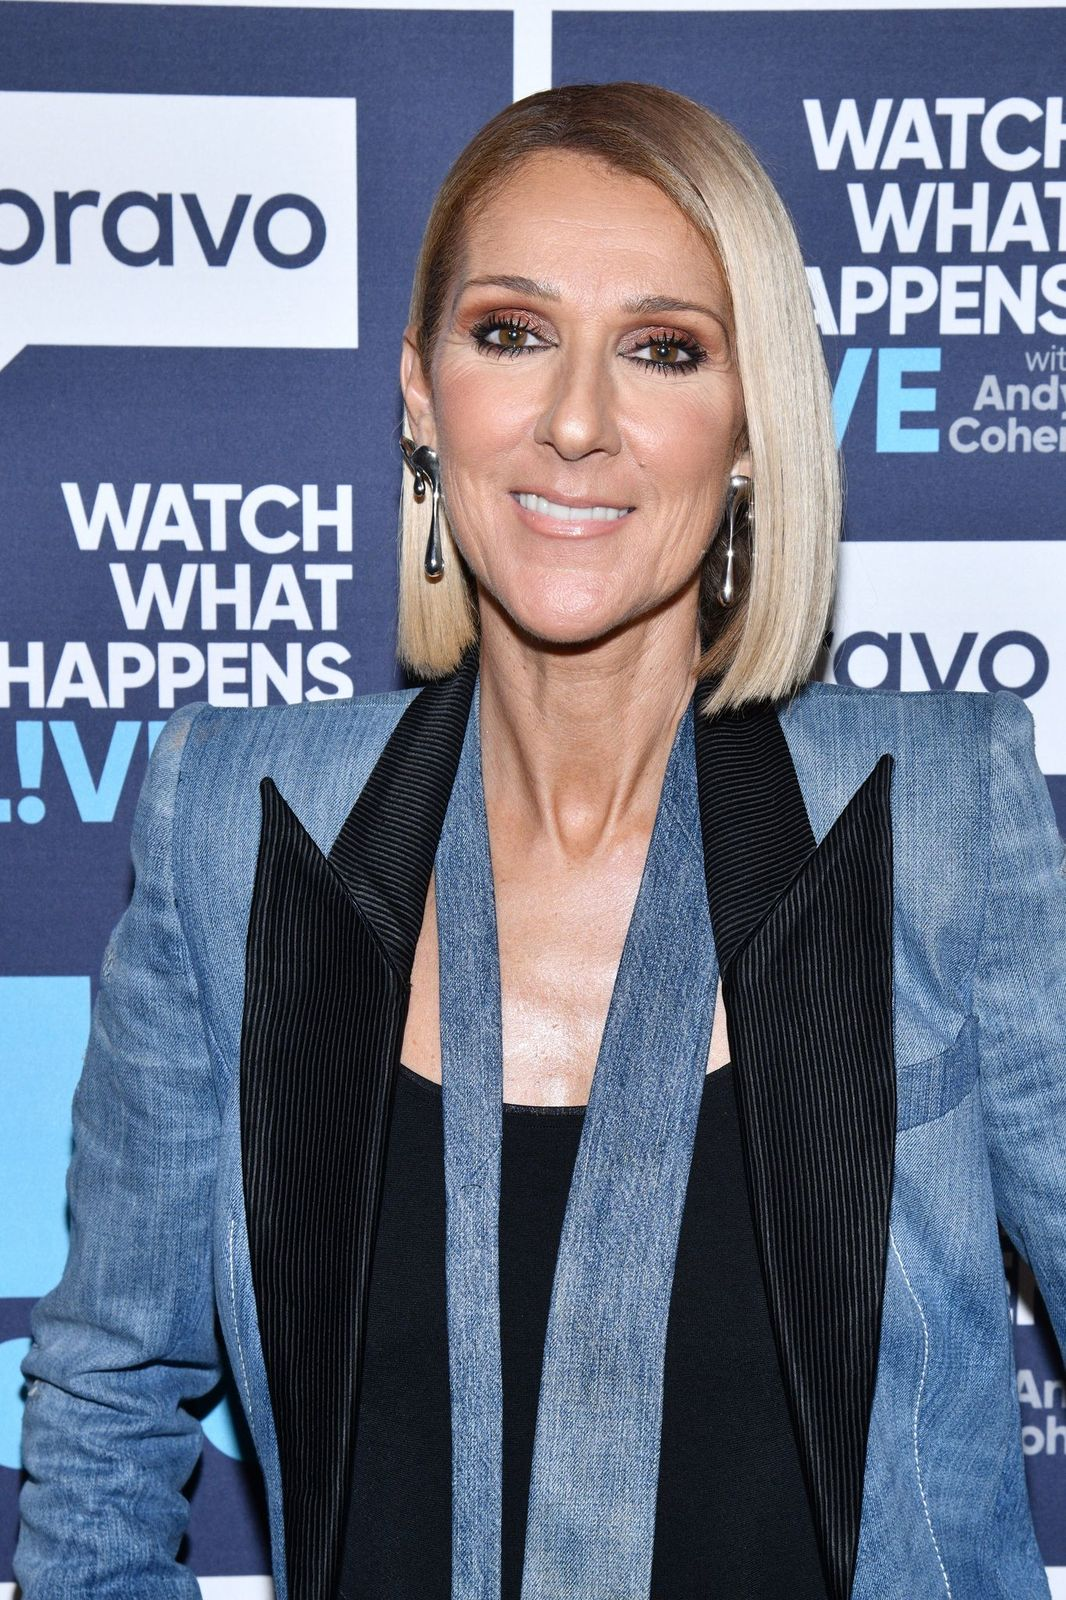 Celine Dion at Watch What Happens Live With Andy Cohen - Season 16 on November 18, 2019 | Photo: Getty Images